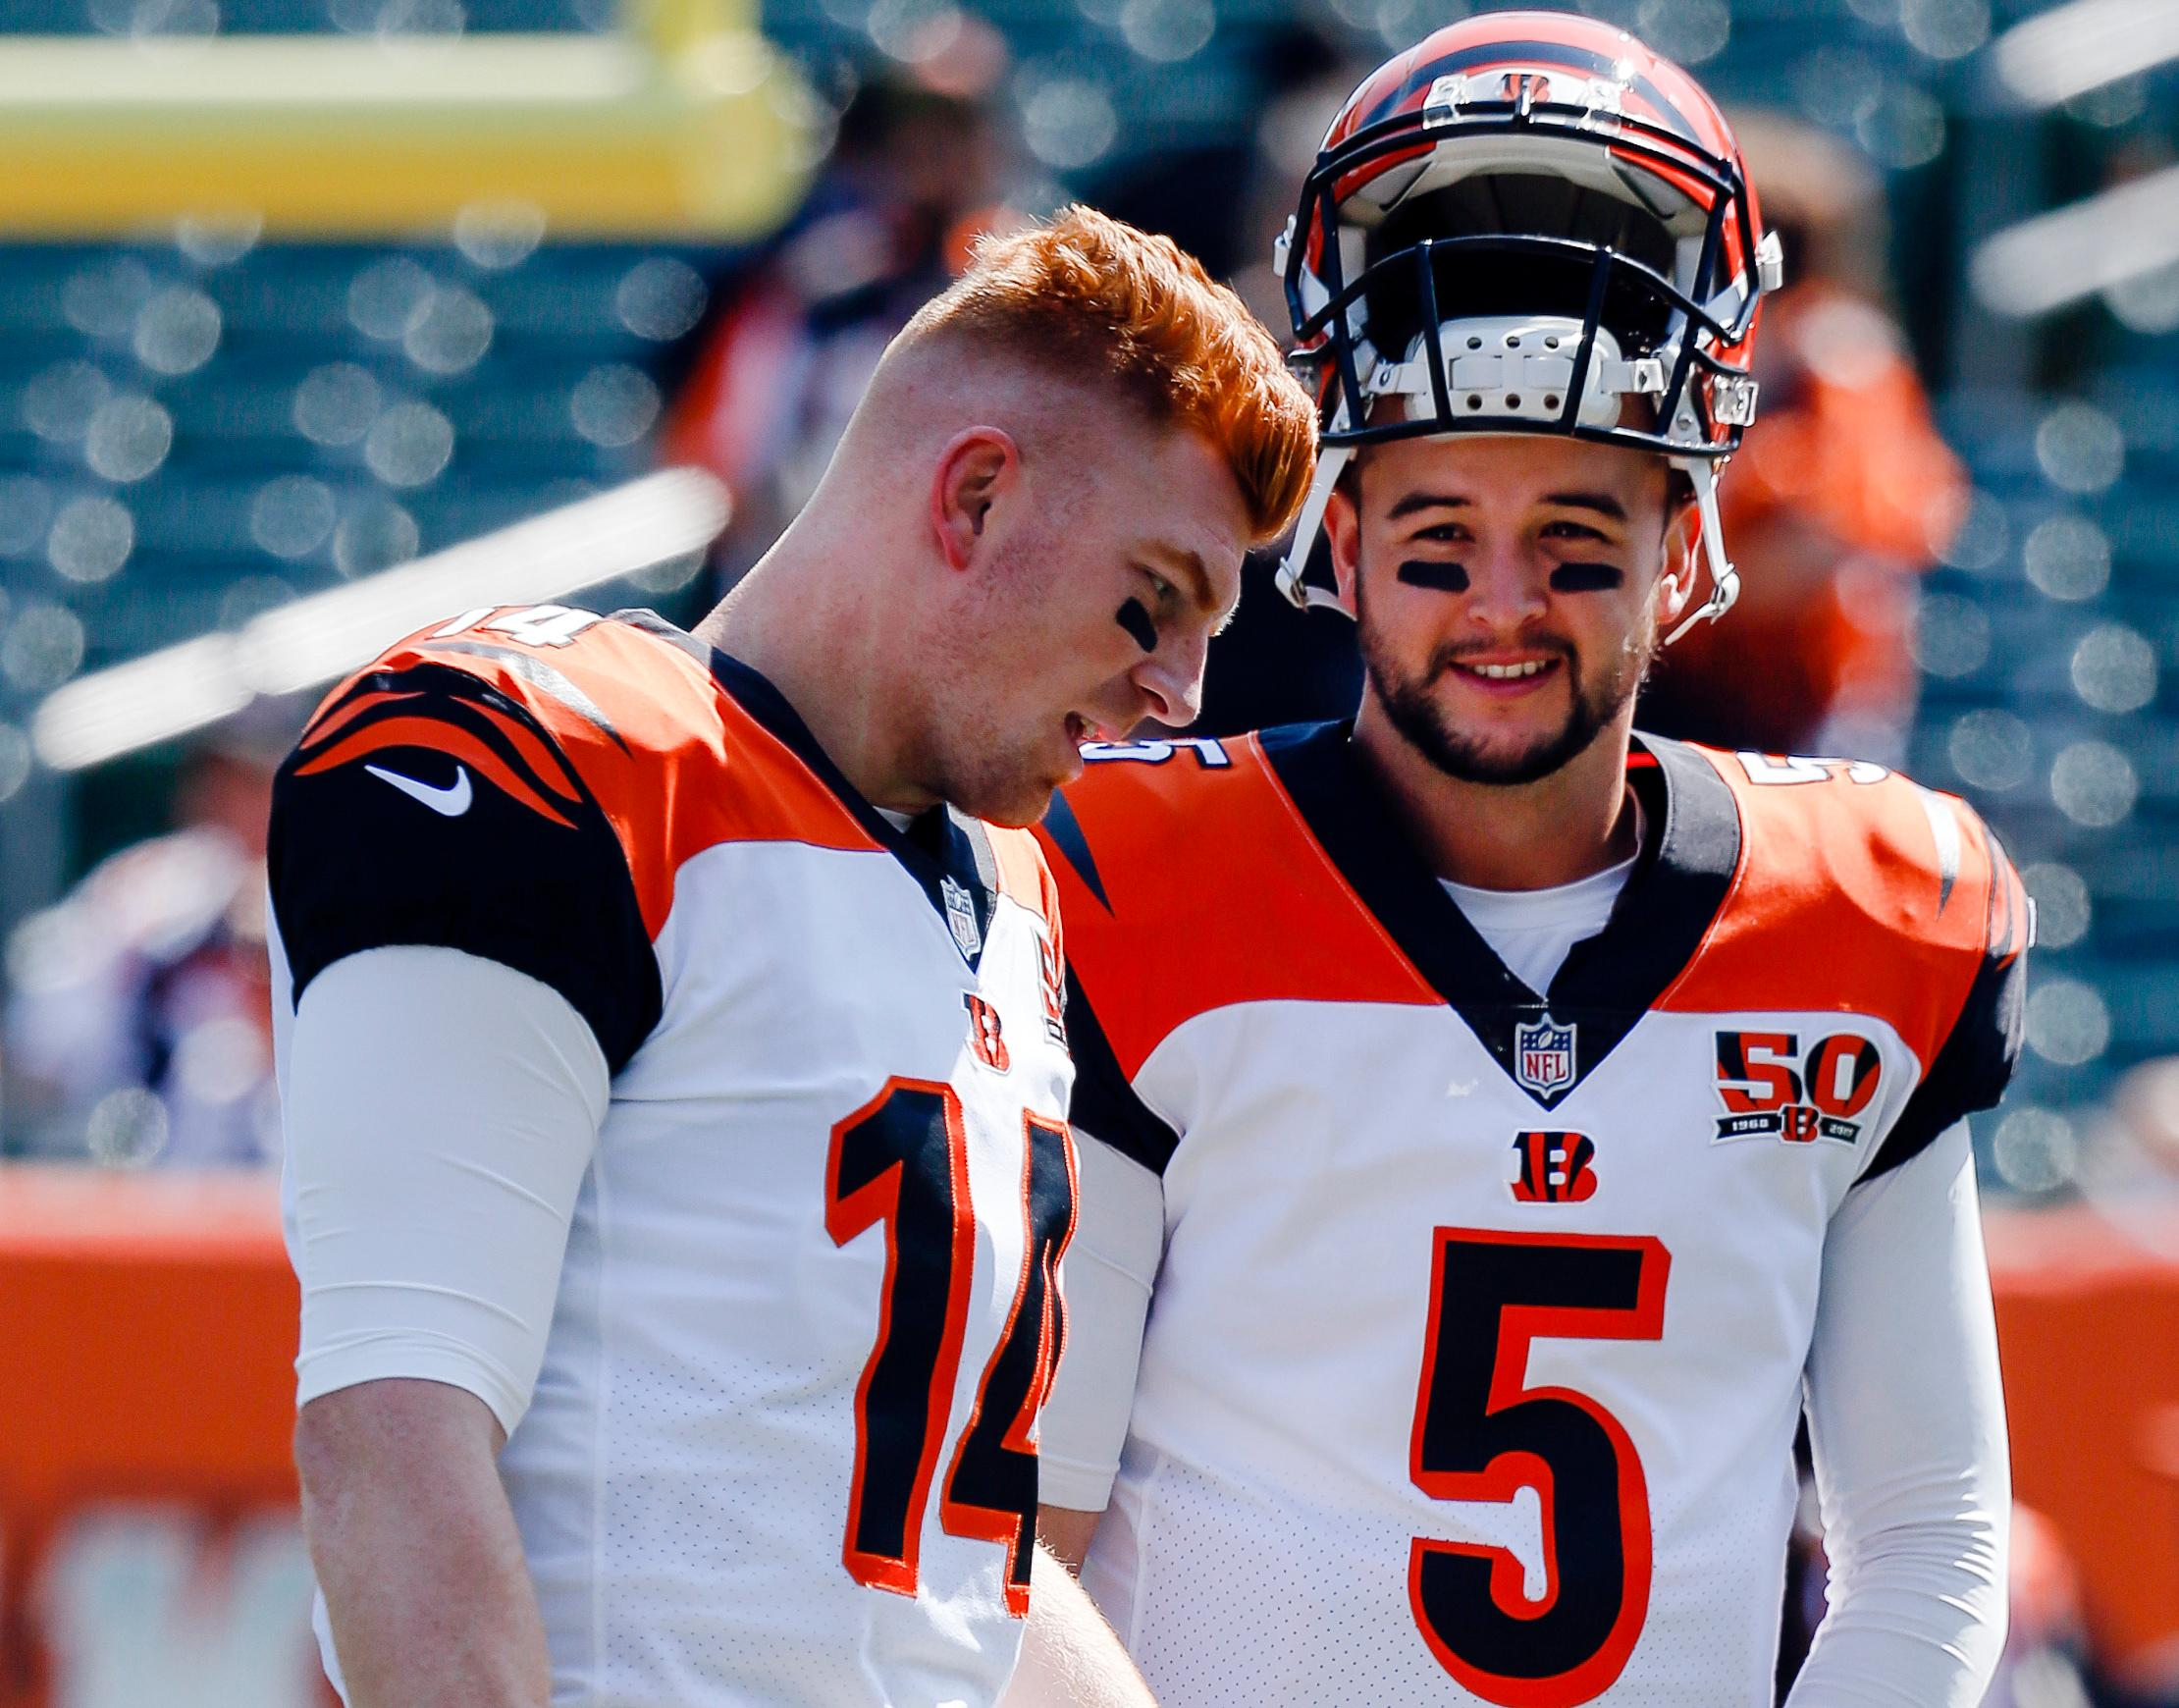 FILE - In this Sept. 10, 2017, file photo, Cincinnati Bengals quarterbacks AJ McCarron (5) and Andy Dalton (14) talk before an NFL football game against the Baltimore Ravens in Cincinnati. McCarron still doesn't know what to make of a botched trade that would have sent the Bengals backup quarterback to Cleveland. The deal was reached, but all the paperwork wasn't submitted to the league before the trade deadline. (AP Photo/Frank Victores, File)